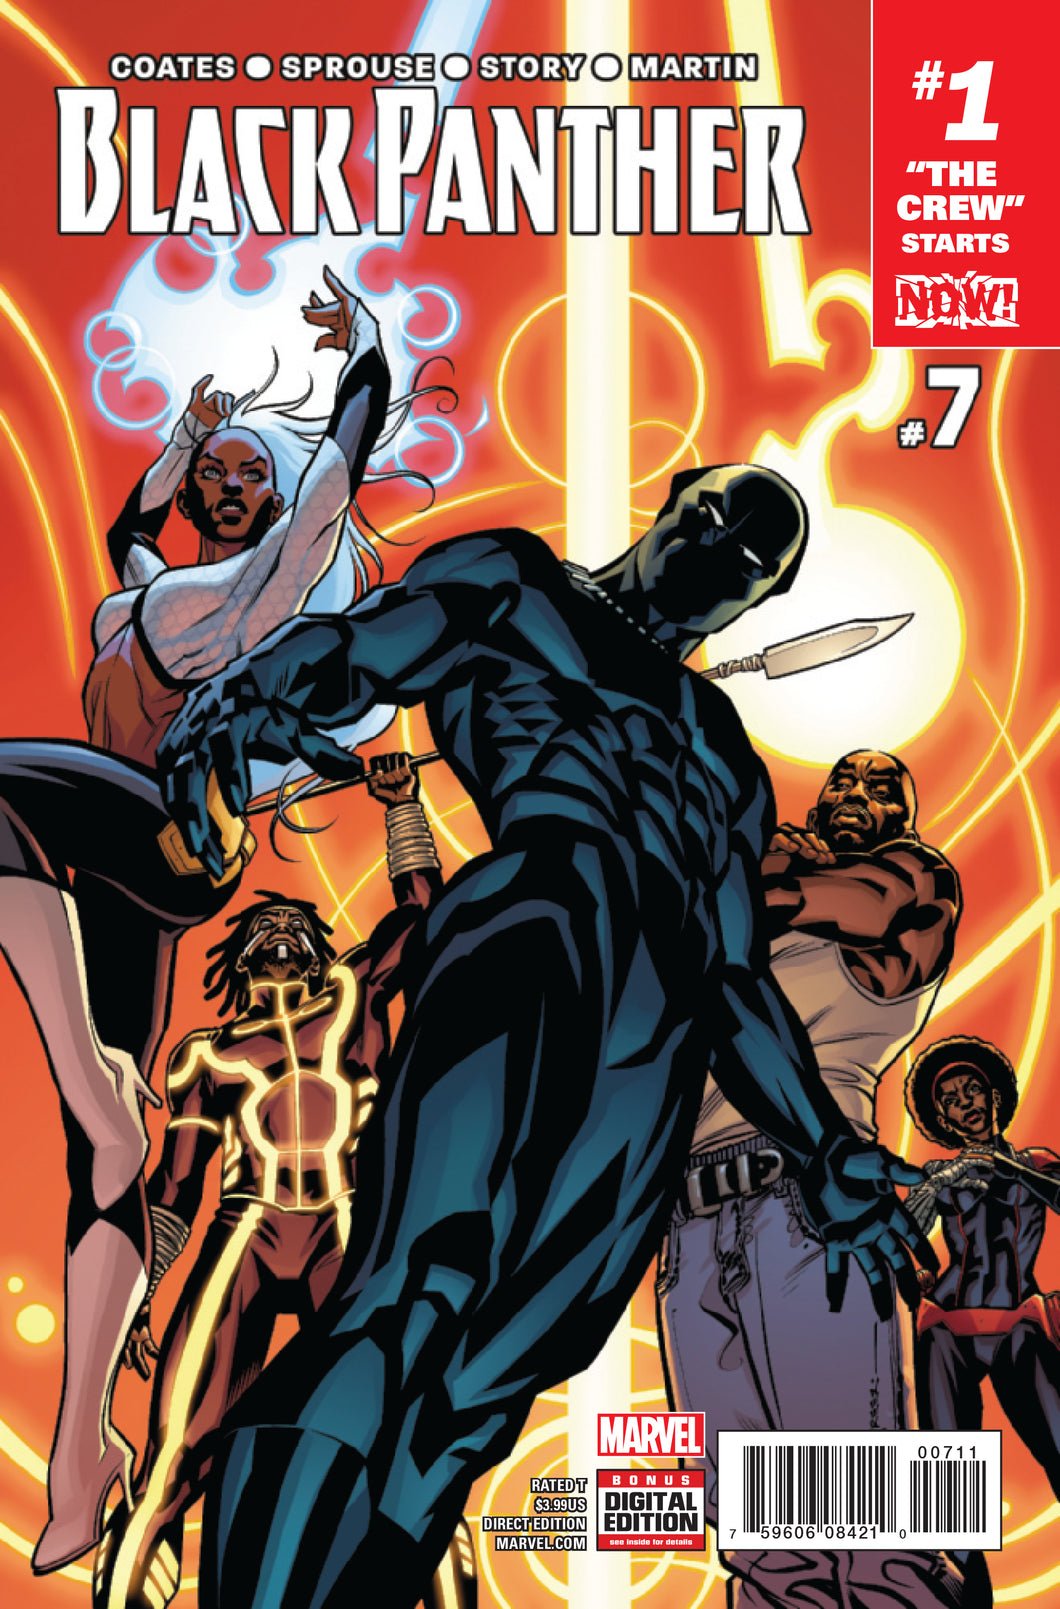 Now Black Panther #7